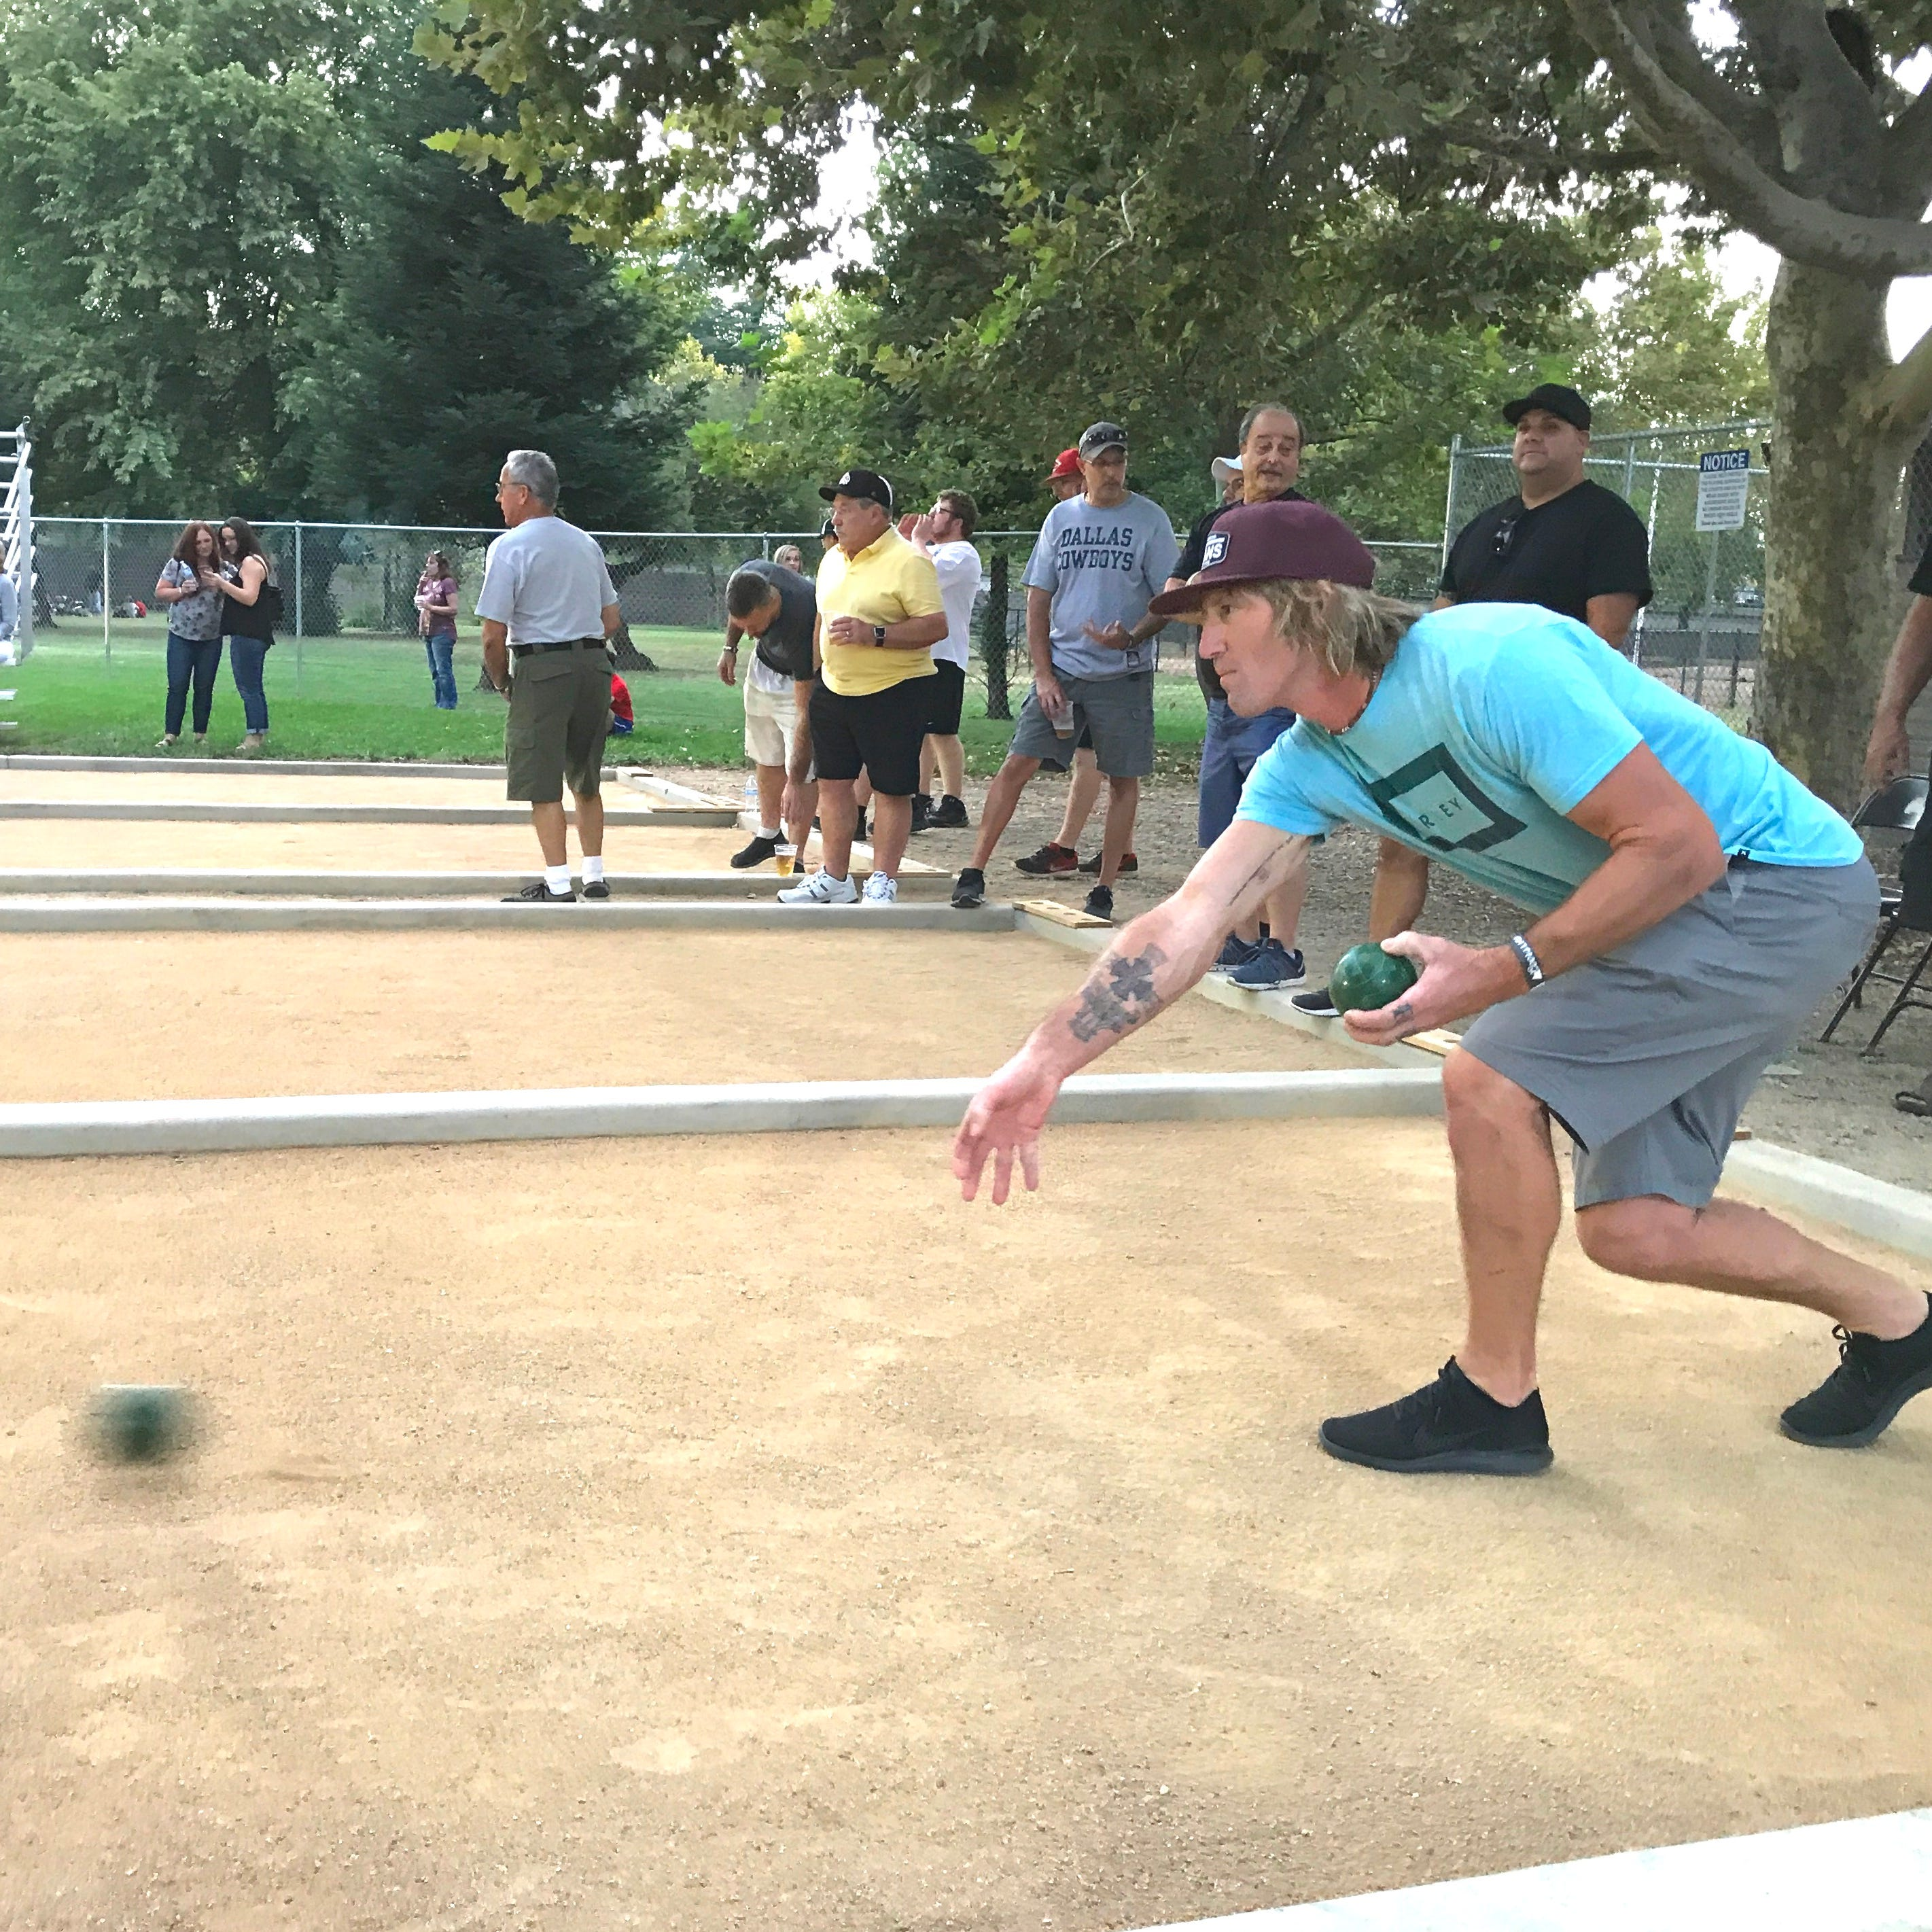 Paesano Days offers food and friendly competition